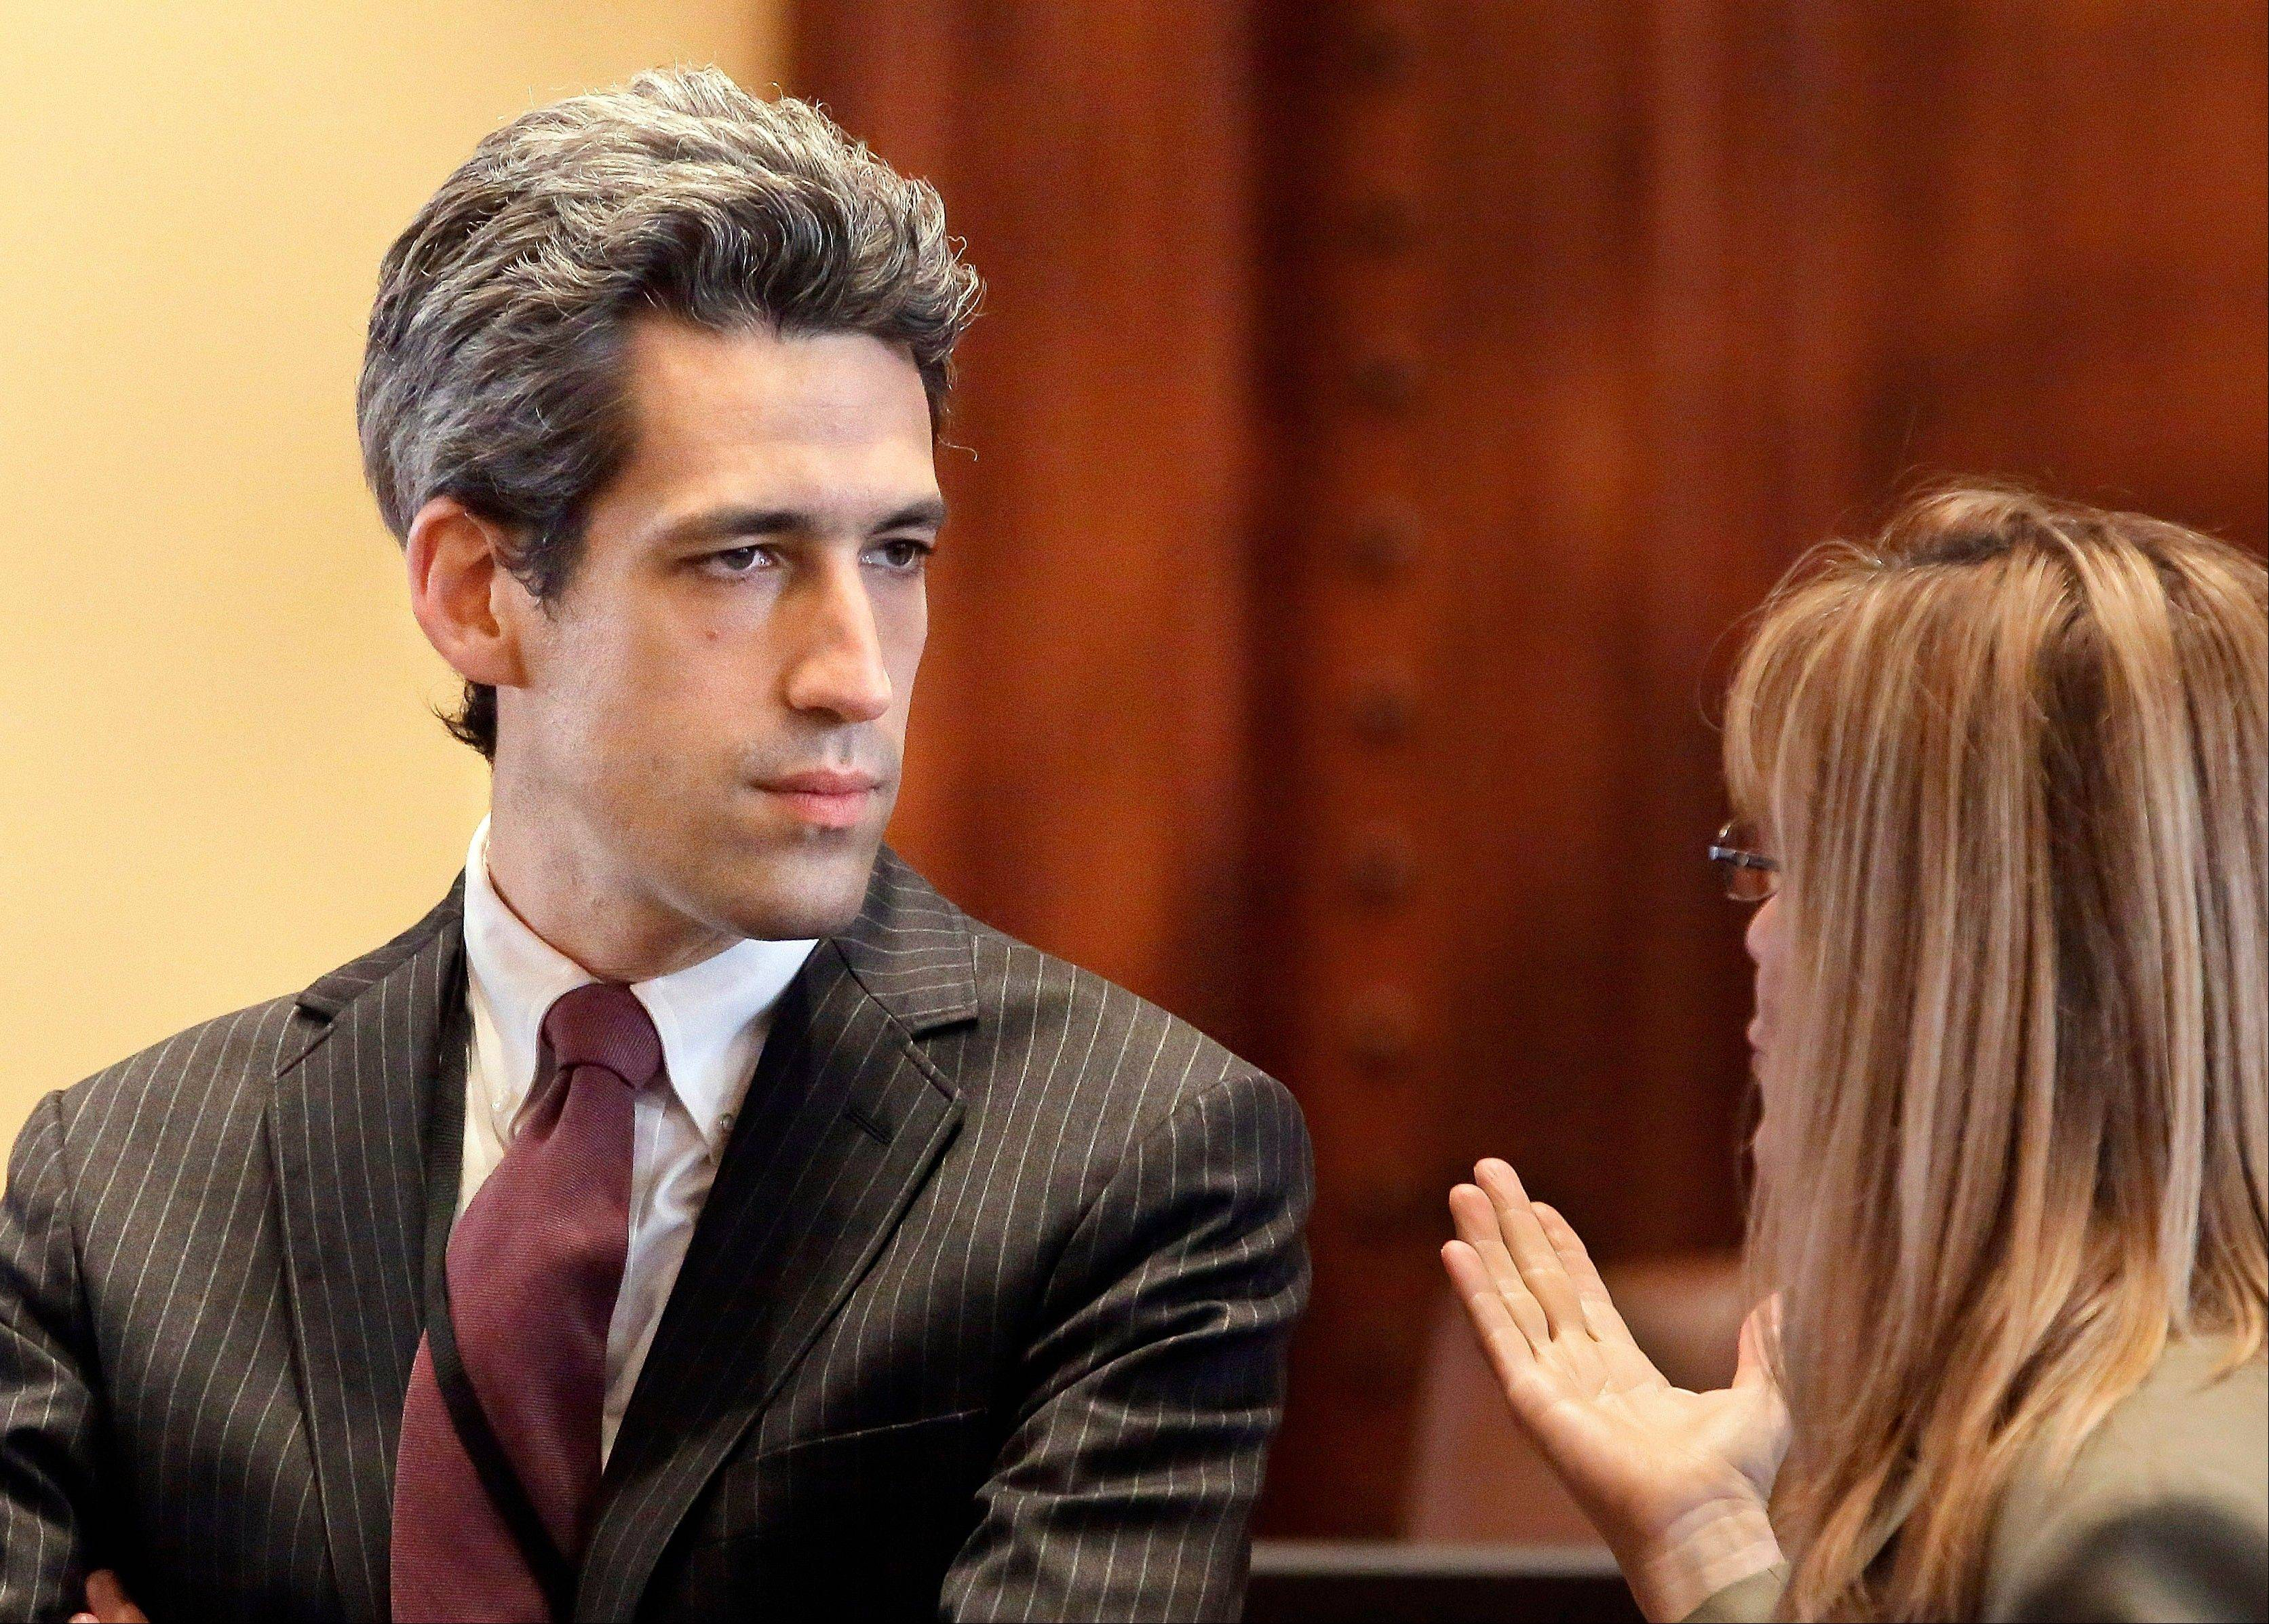 Associated PressIllinois Sen. Daniel Biss, D-Skokie speaks with a legislative staffer at the state Capitol in Springfield. A report to be released Tuesday says an Illinois $160 billion pension plan ultimately won�t make much of a dent in the state�s growing deficits.